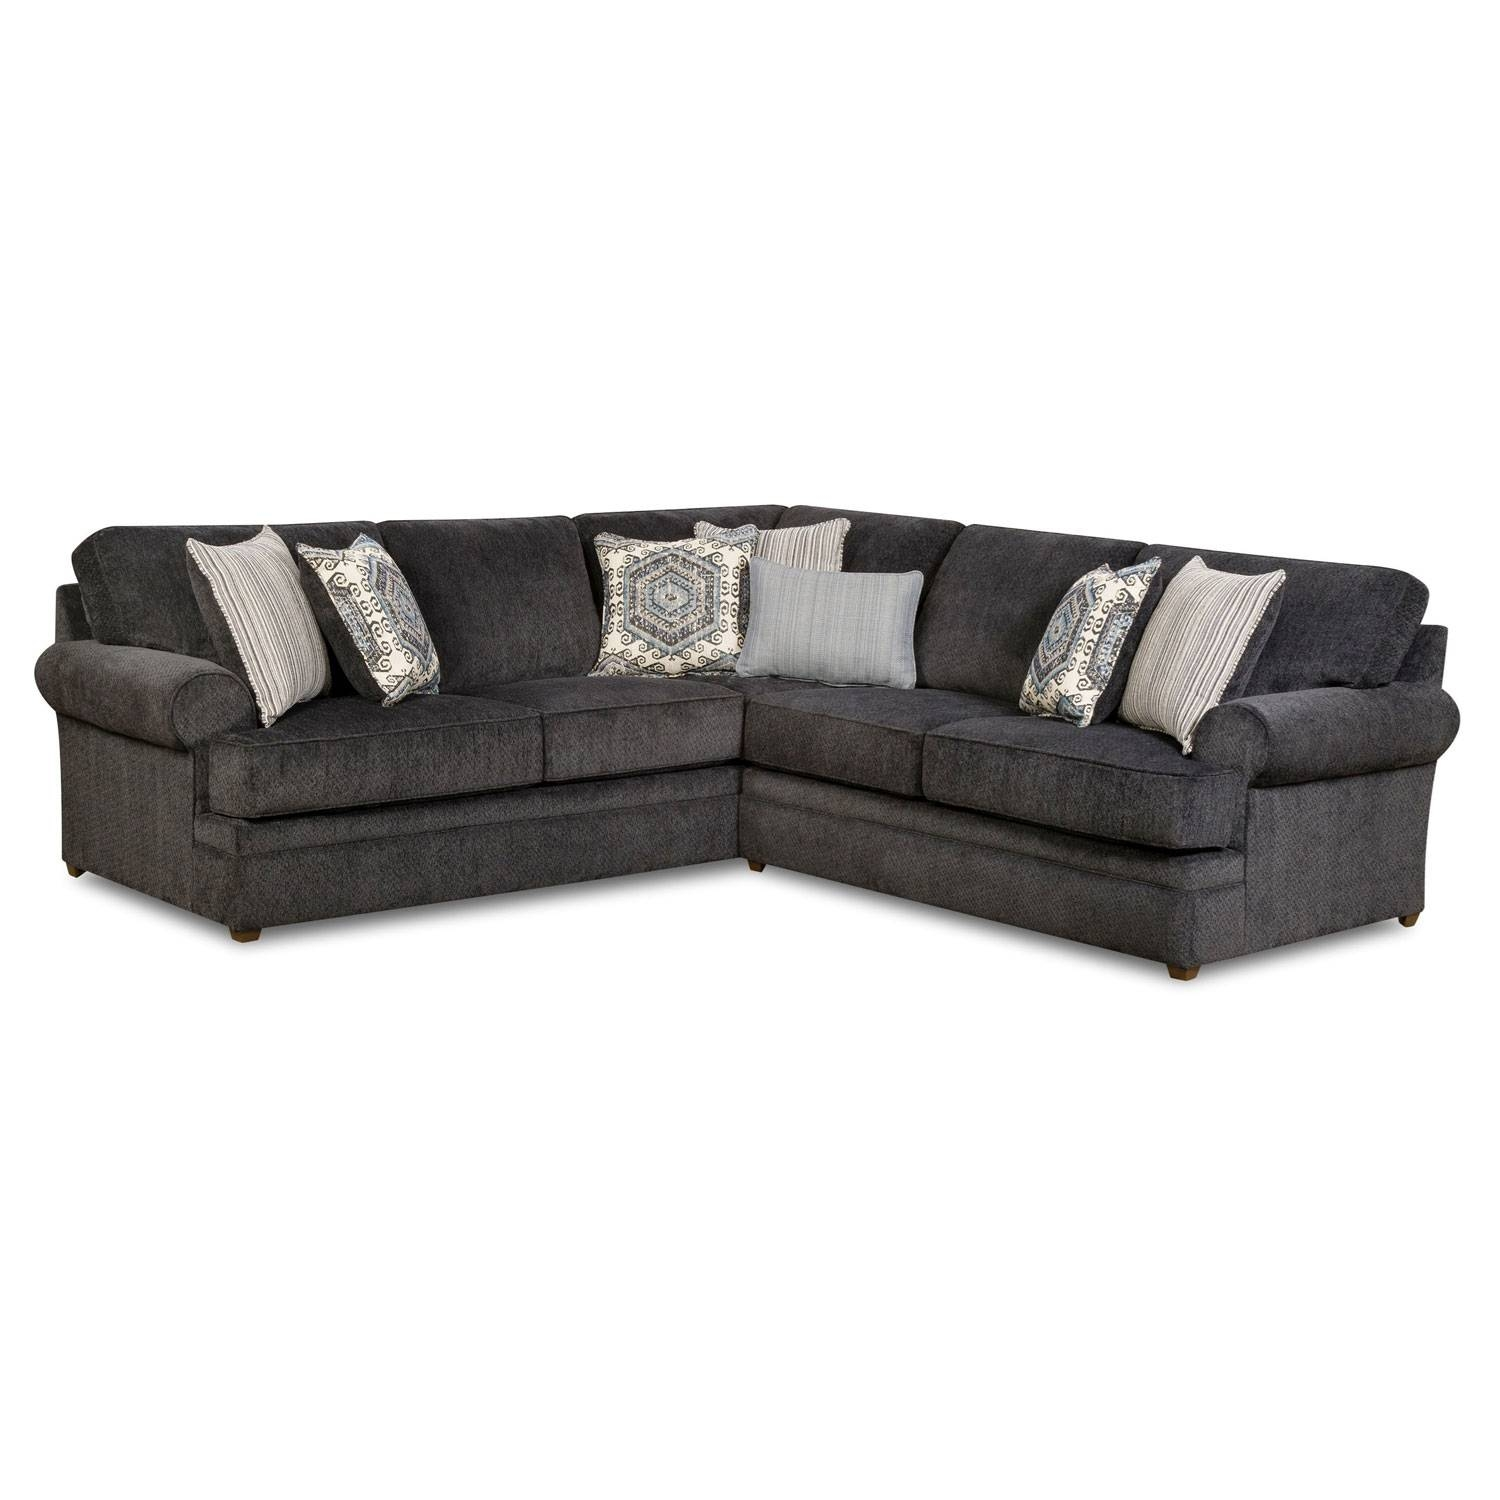 Simmons 8530Br Sectional Sofa Bellamy Slate | Hope Home with Simmons Sectional Sofas (Image 11 of 30)